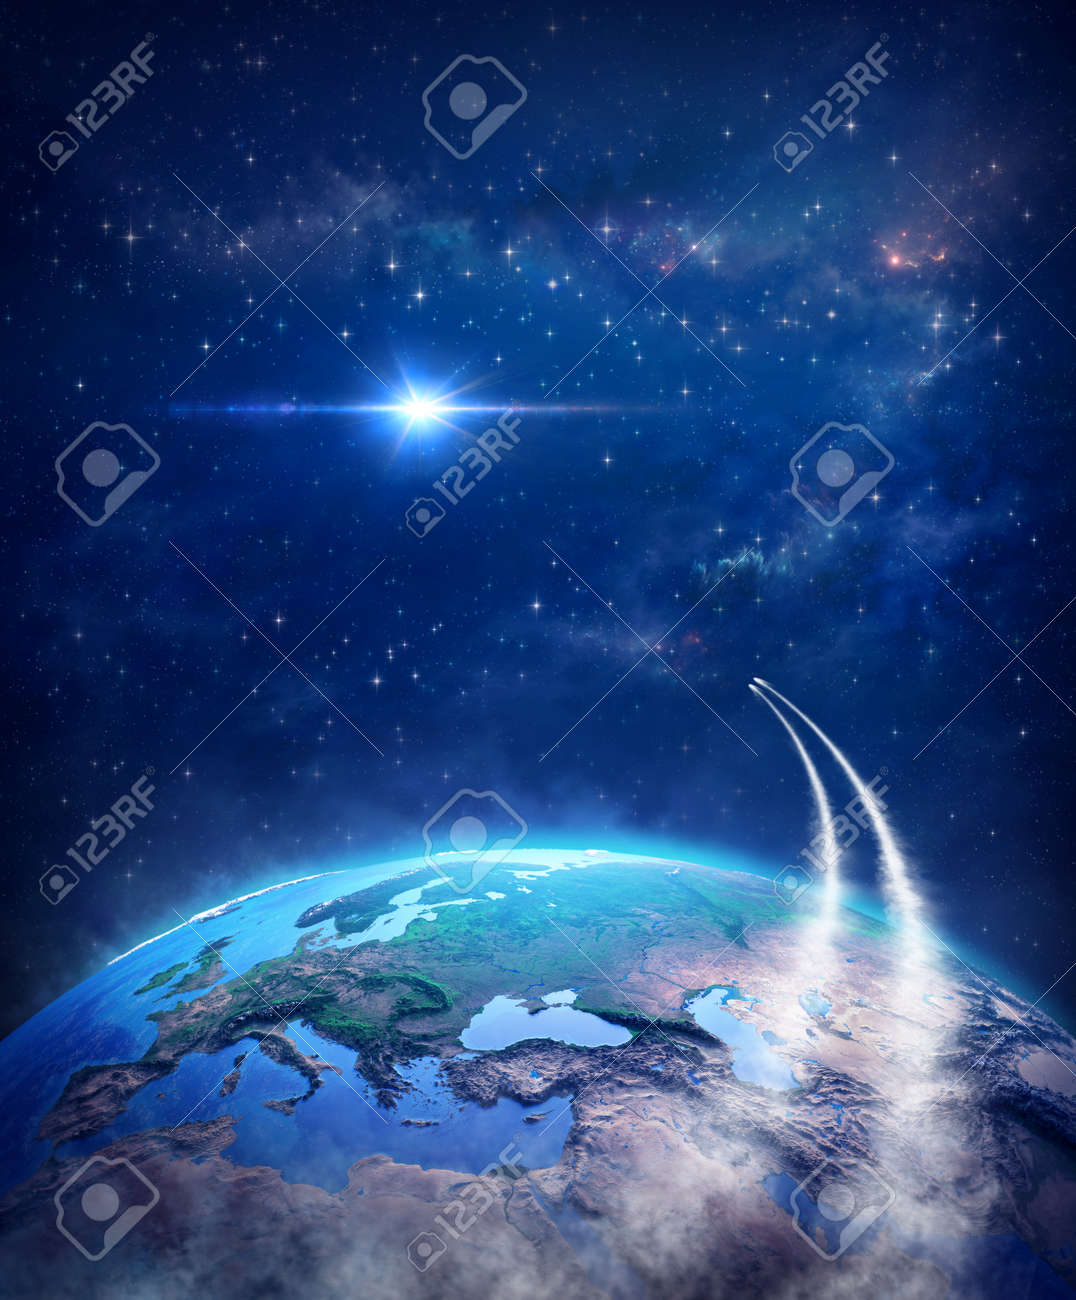 Spaceships leaving planet Earth for universe exploration and constellations discovery, bright star shining into deep space. Comets in orbit around the world, traveling through cosmos and galaxy. - 160820778